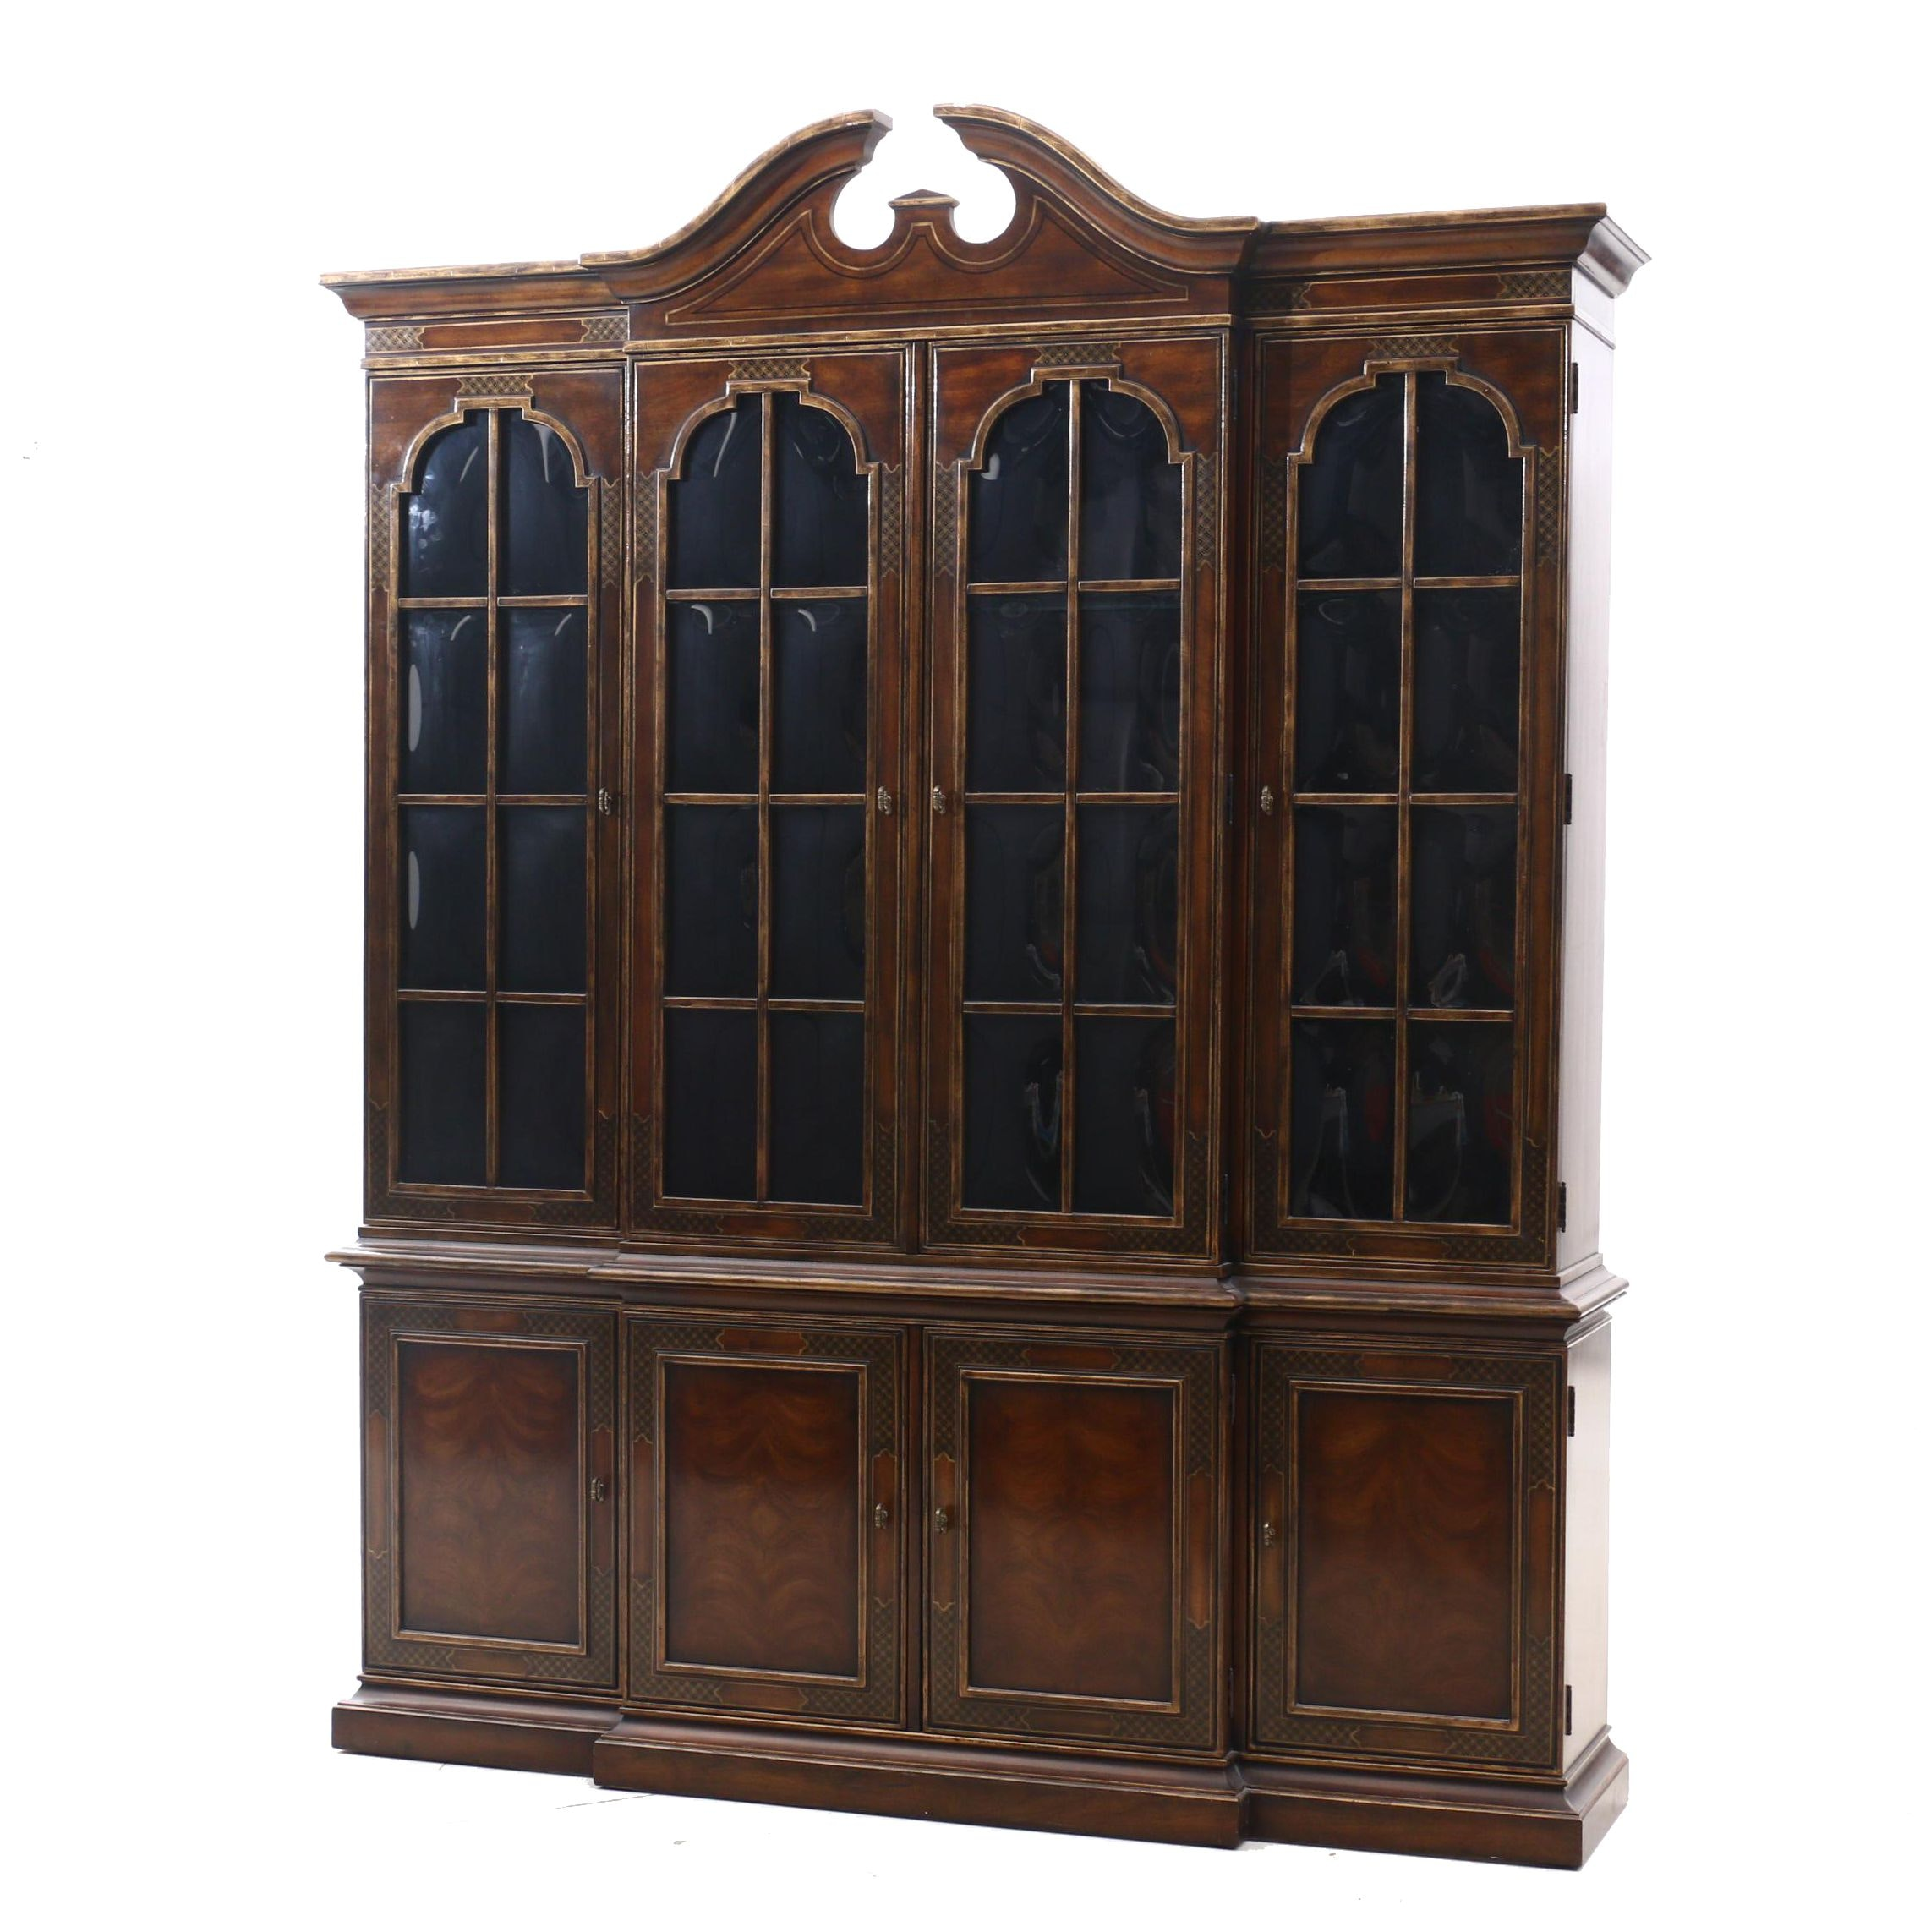 Drexel George III Style Mahogany China Cabinet with Asian Accents, Contemporary